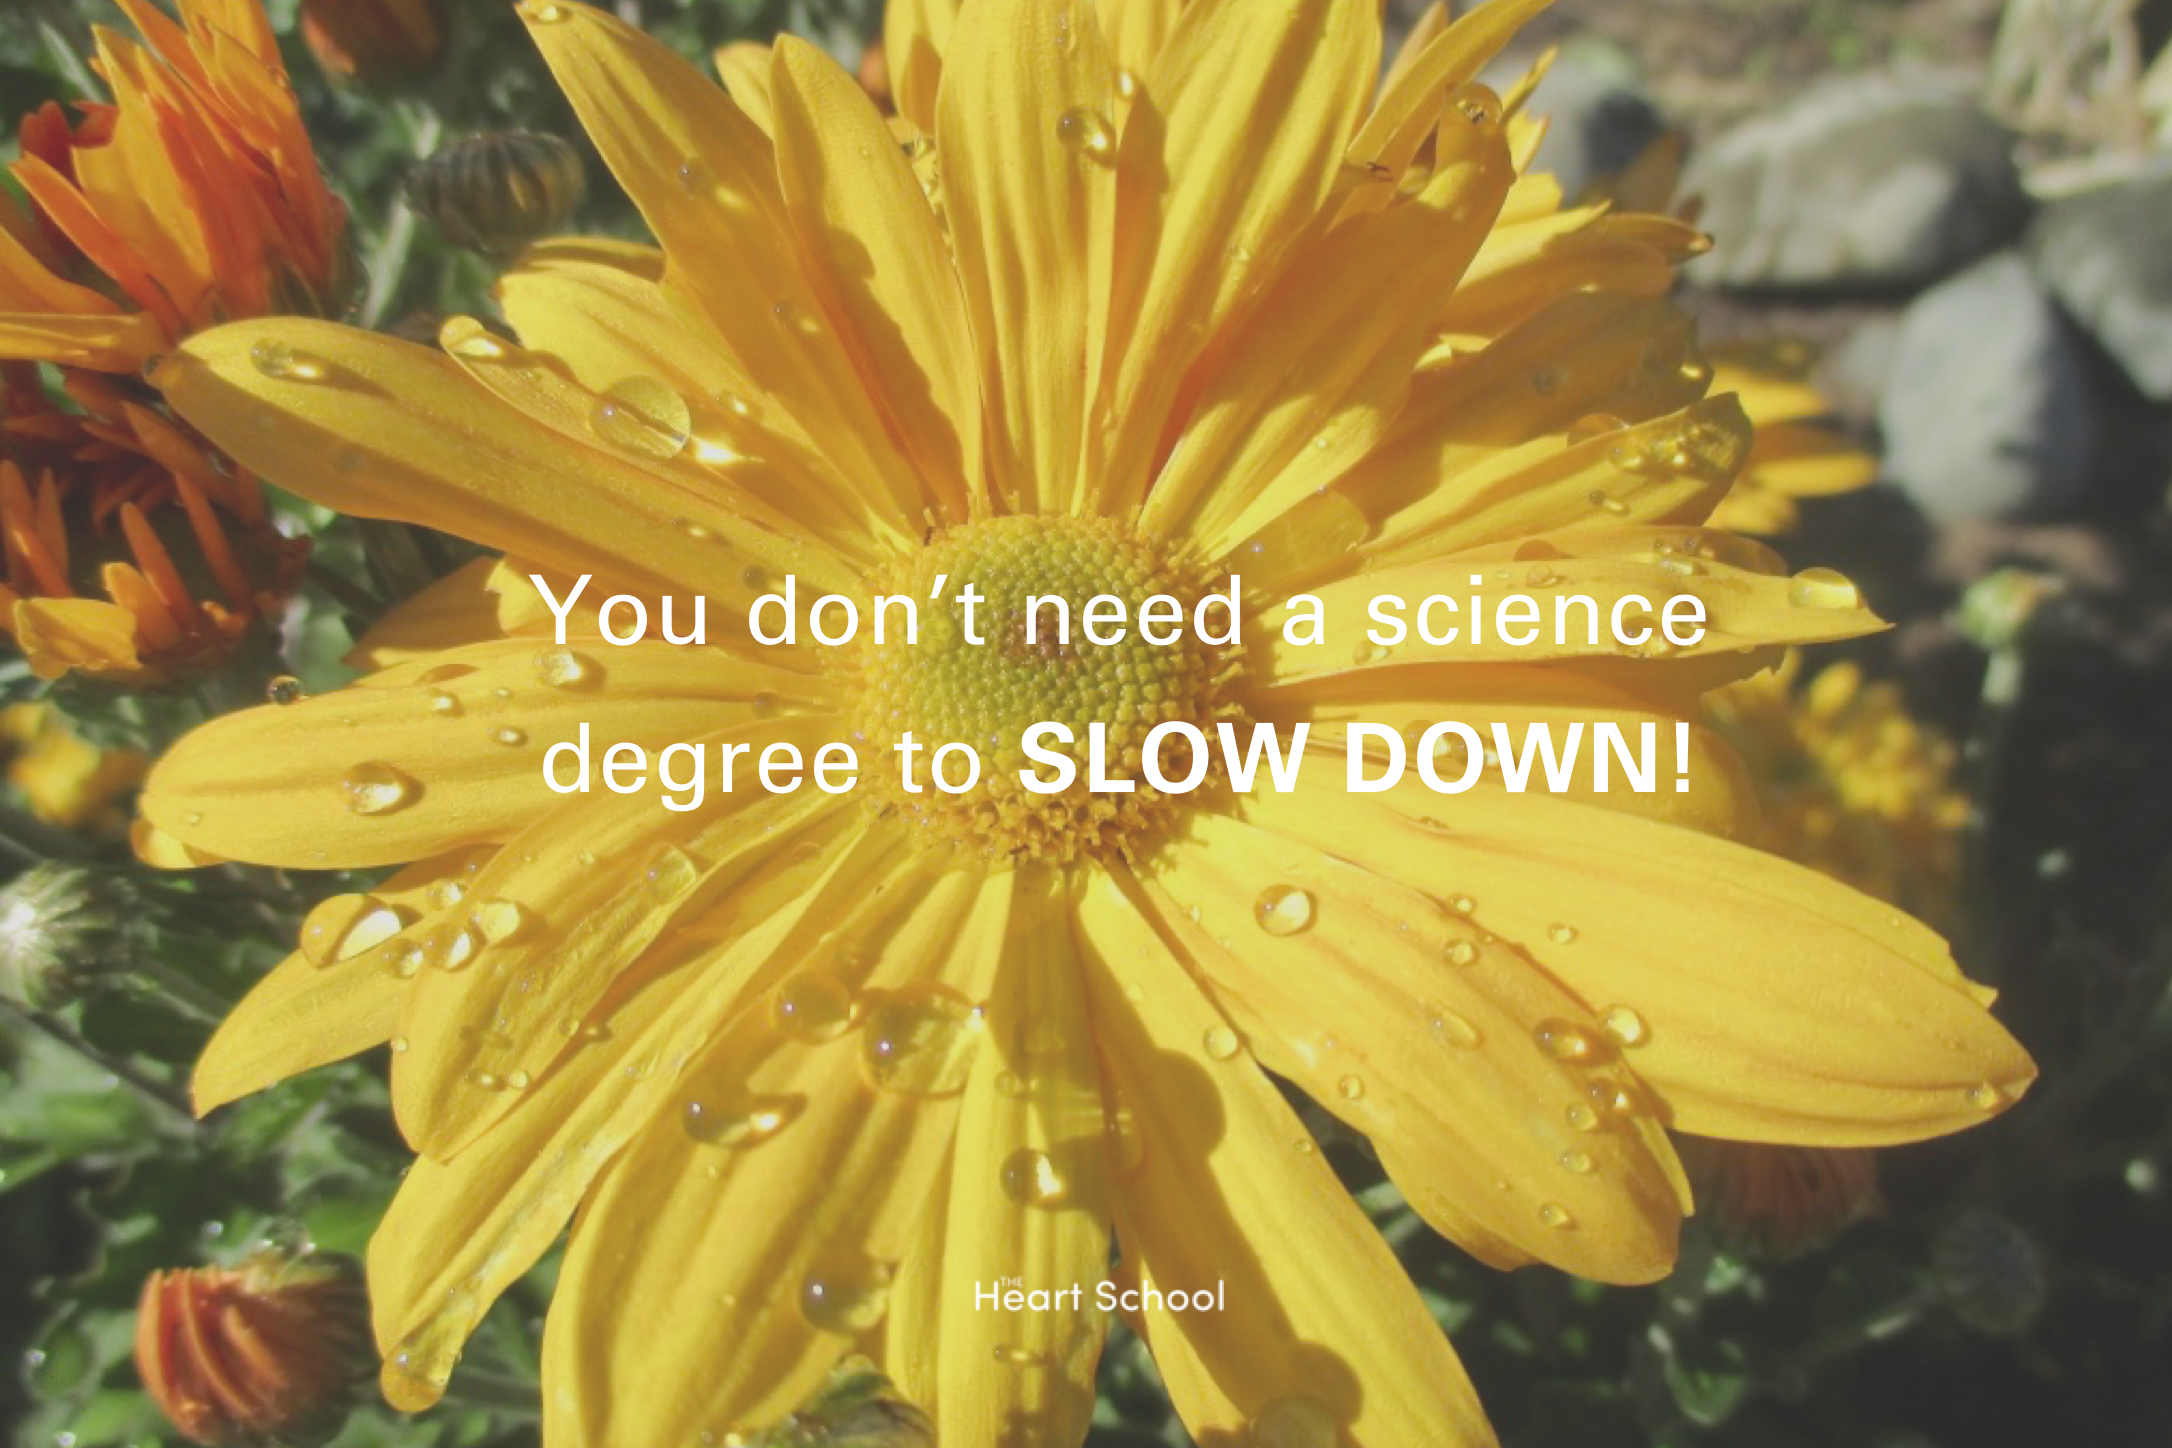 """You do not need to have a degree in science to connect with nature! The only thing you need to do is to slow down and """"just notice"""", to be aware, to be open to what is happening right here in front of you. Notice the sparrow taking a bath in the puddle, the raindrops on the petals. Slow down and notice!"""